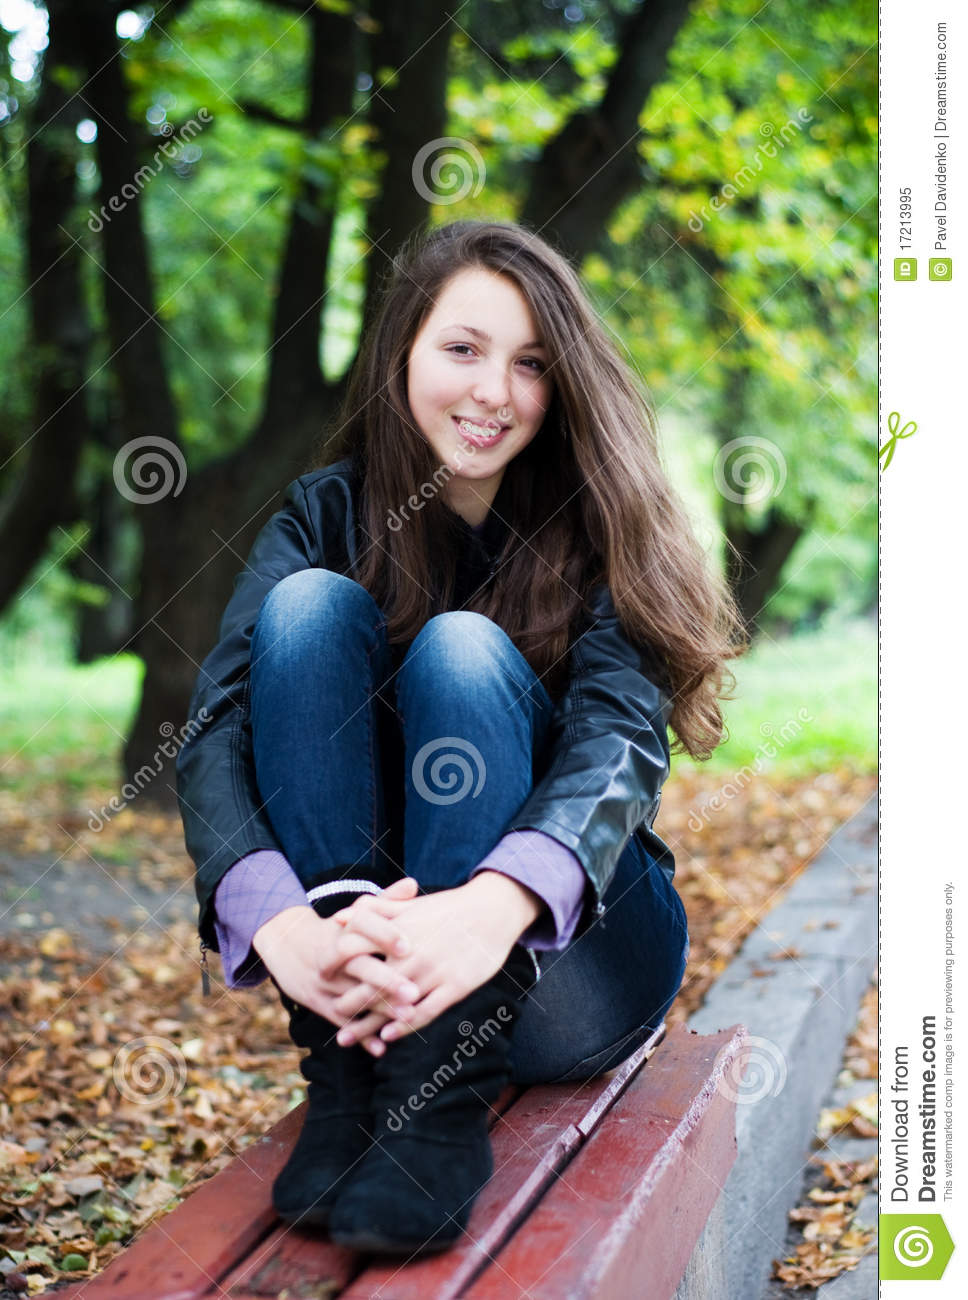 Pretty Female Model Outdoors Poses Stock Images, Royalty